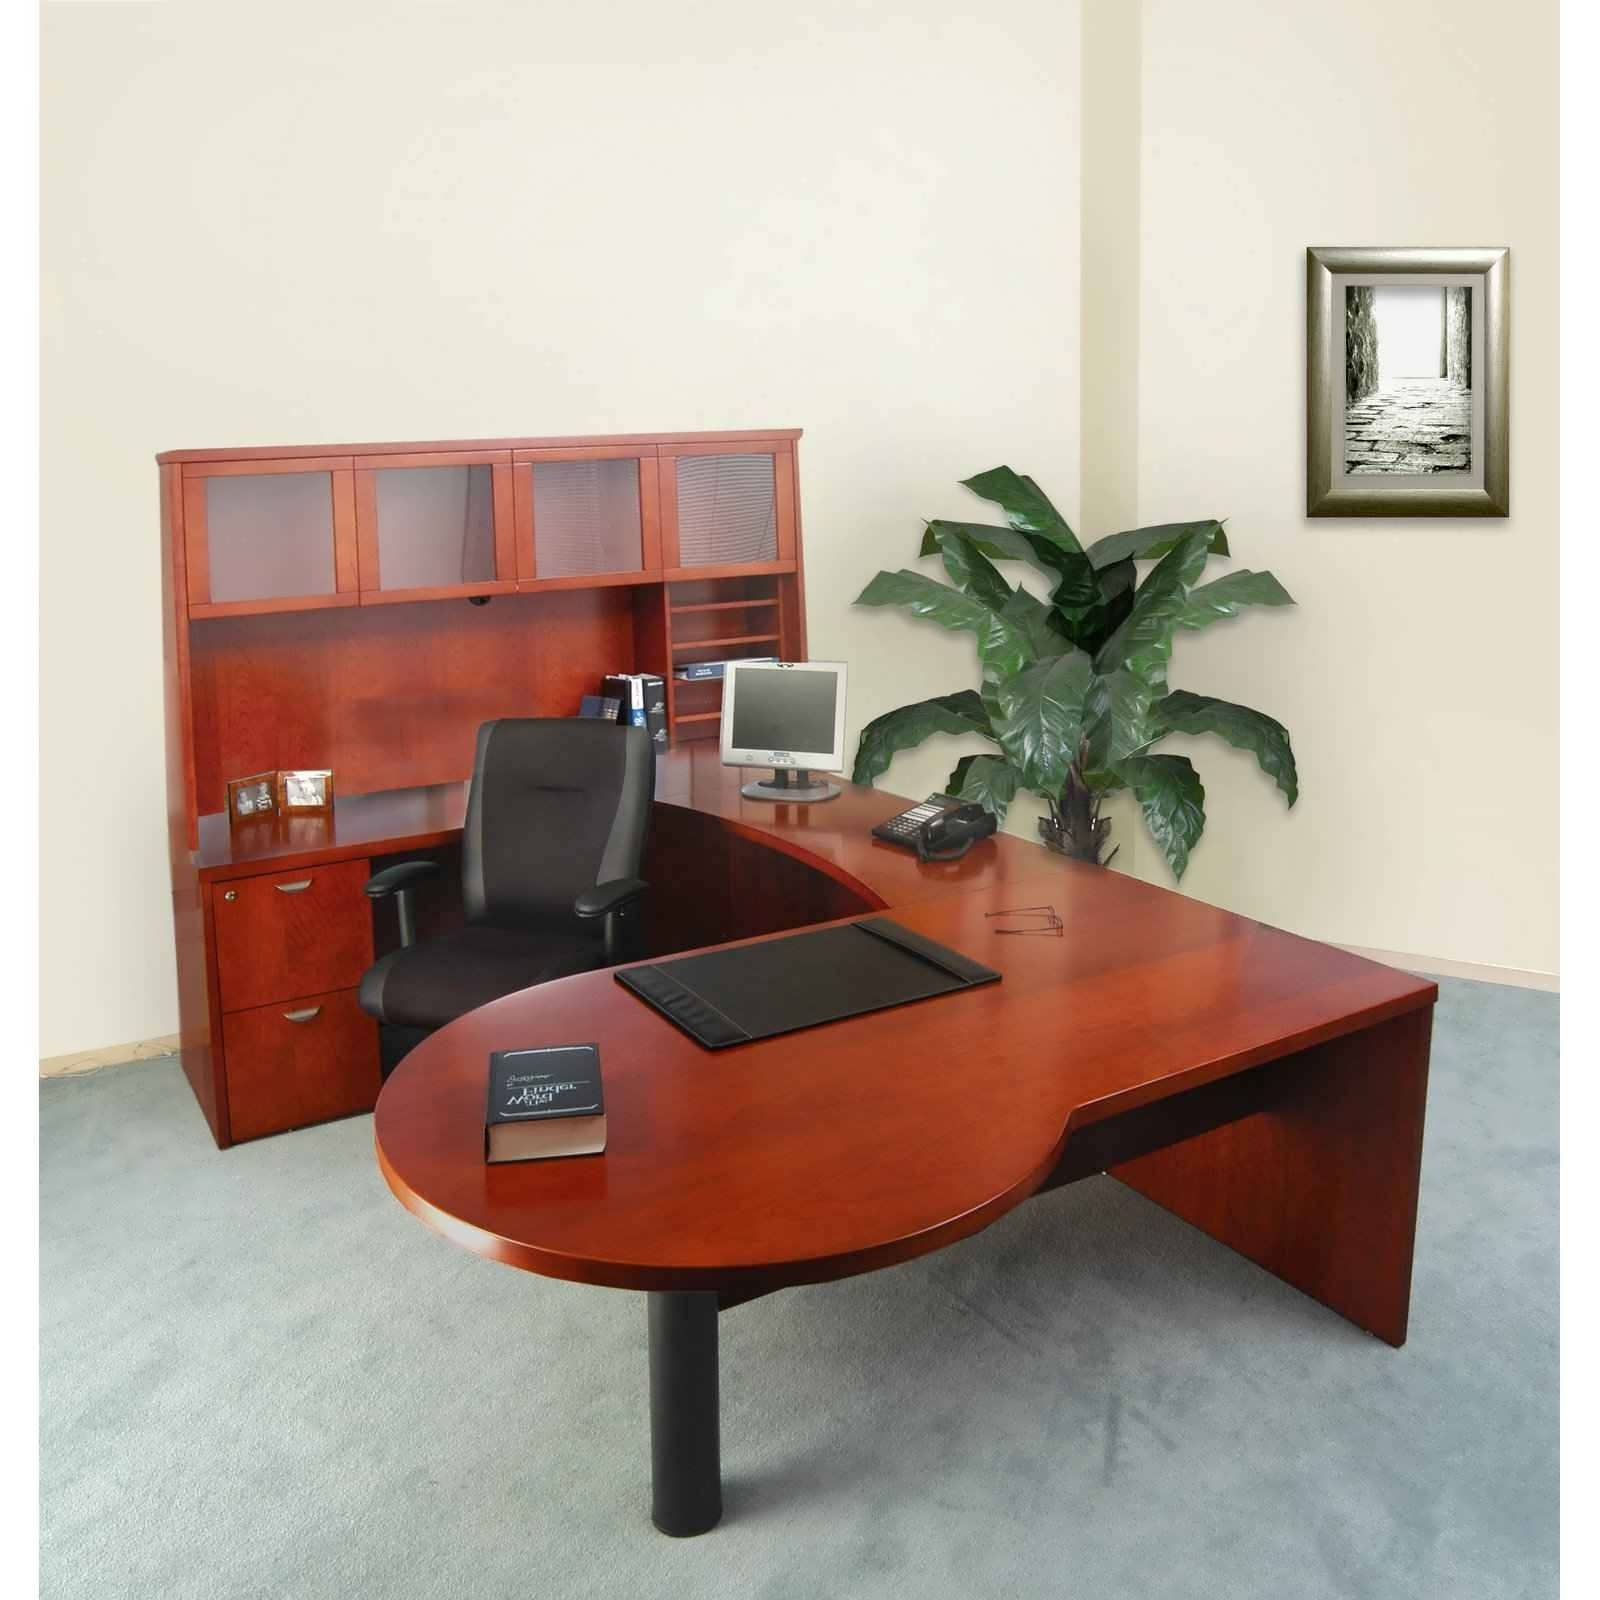 Office Desk : Discount Office Furniture Reconditioned Office Regarding Most Up To Date Executive Office Table And Chairs (View 18 of 20)